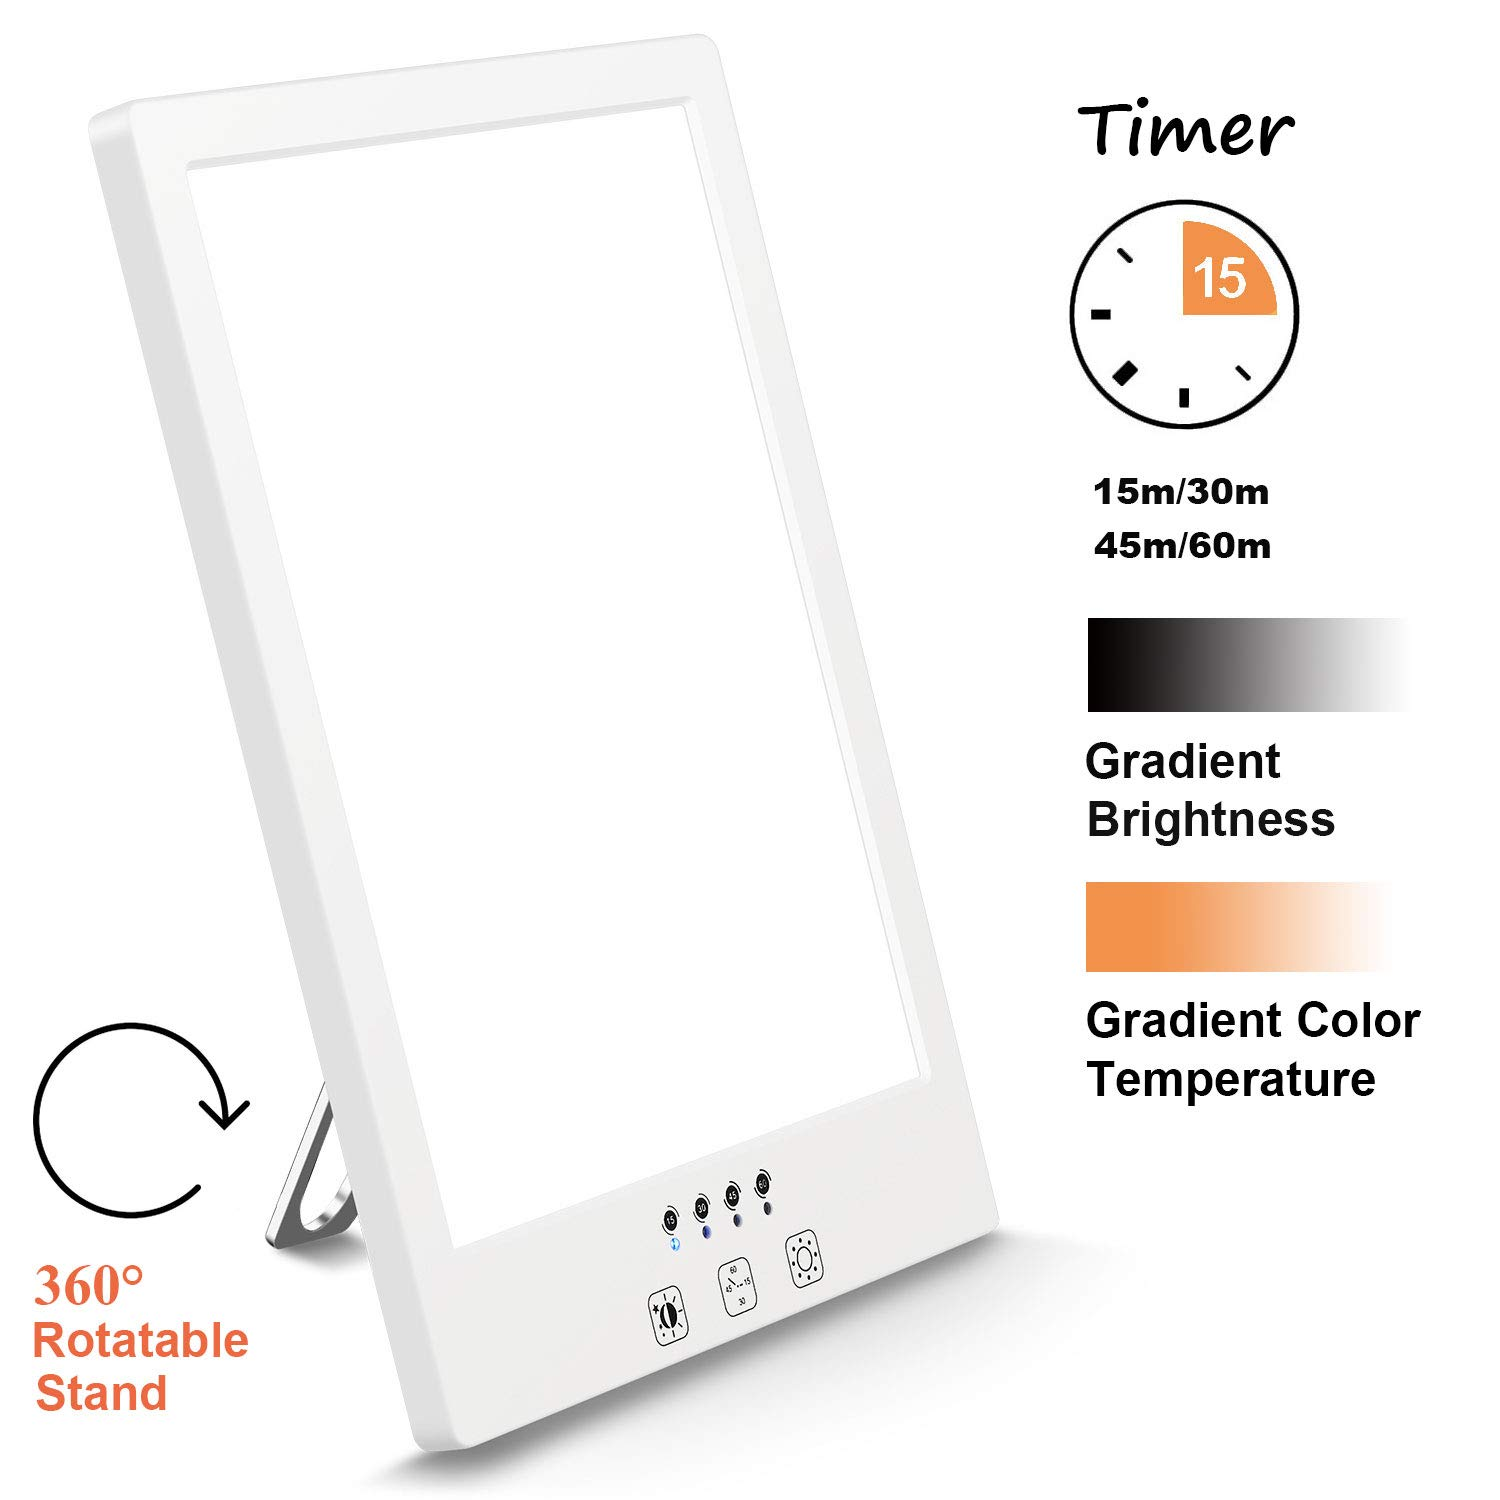 Comenzar Sun Lamp LED White Warm Sad Lamp UV Free 2000-12000 Lux Gradient Brightness Therapy Lamp Timer Function and Touch Control for Home Office Use by Comenzar